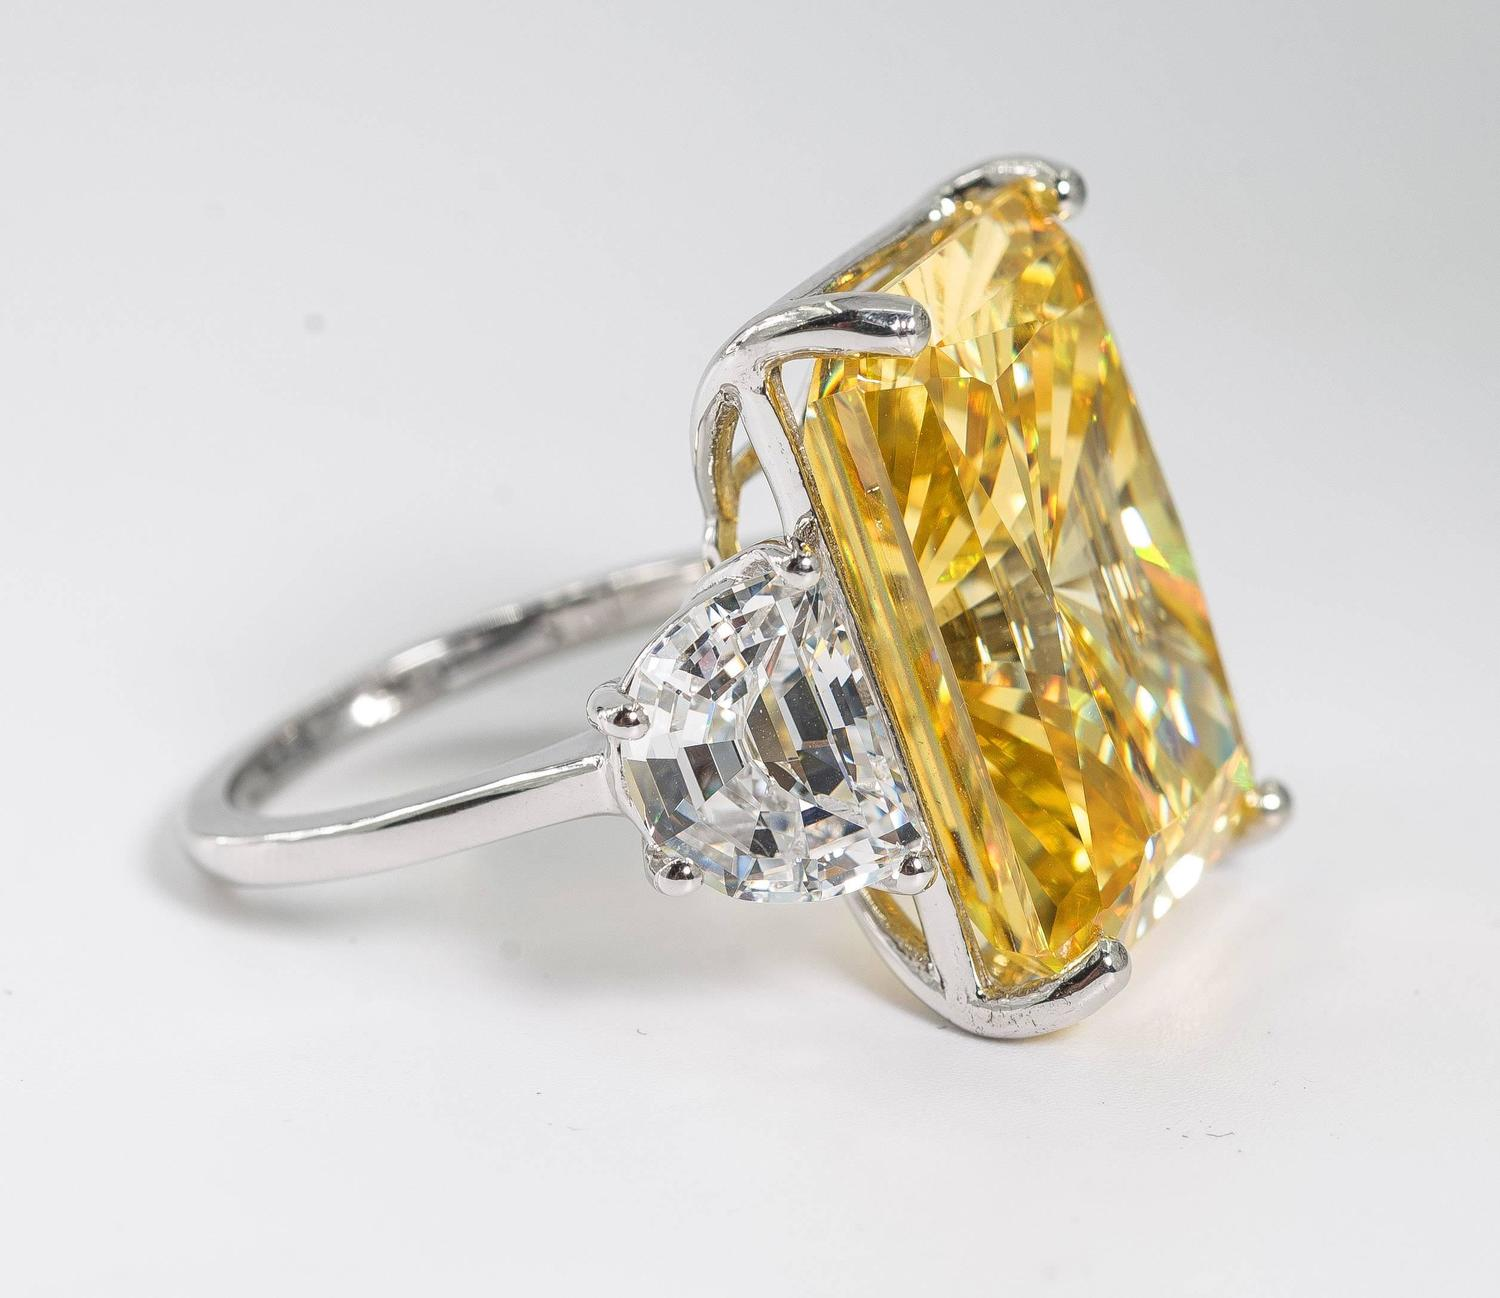 magnificent faux canary yellow 15 carat radiant cut